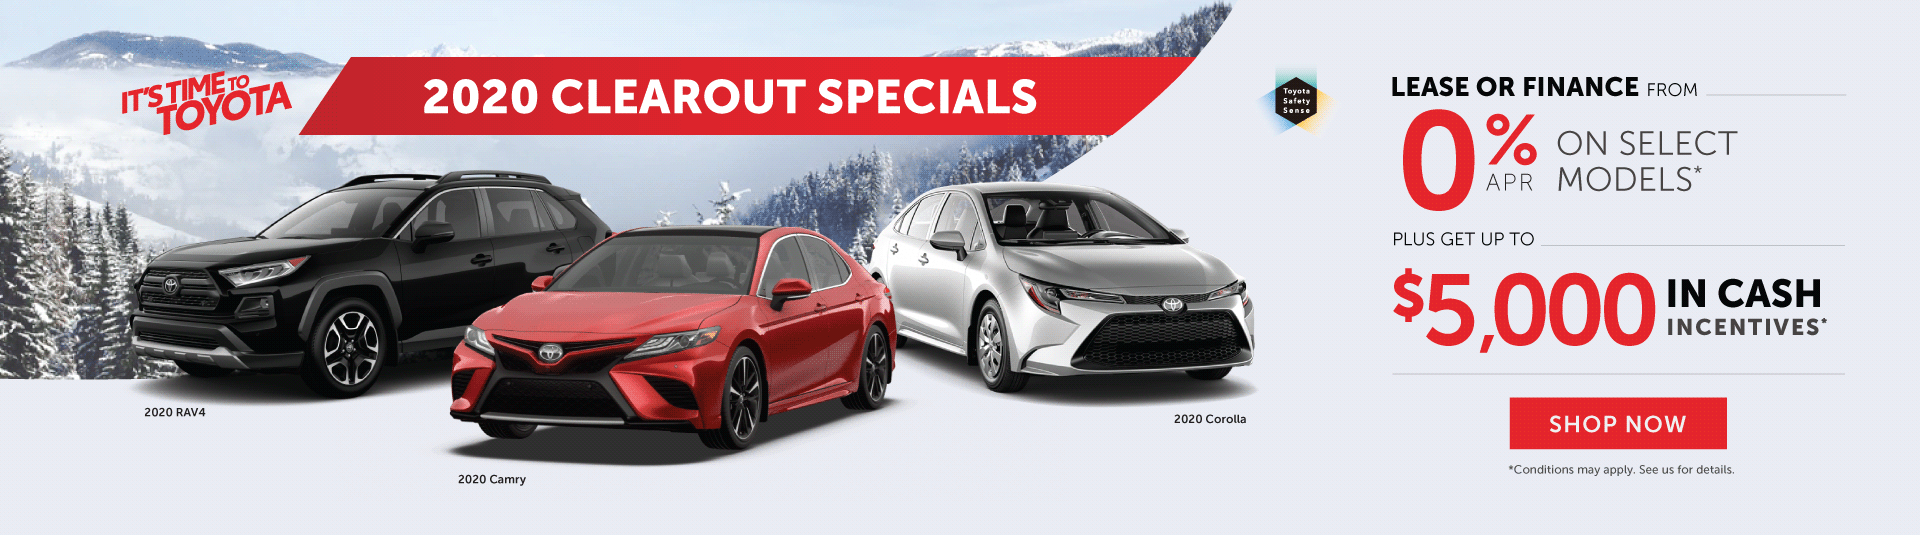 2020-Clearout-Specials-at-Georgetown-Toyota